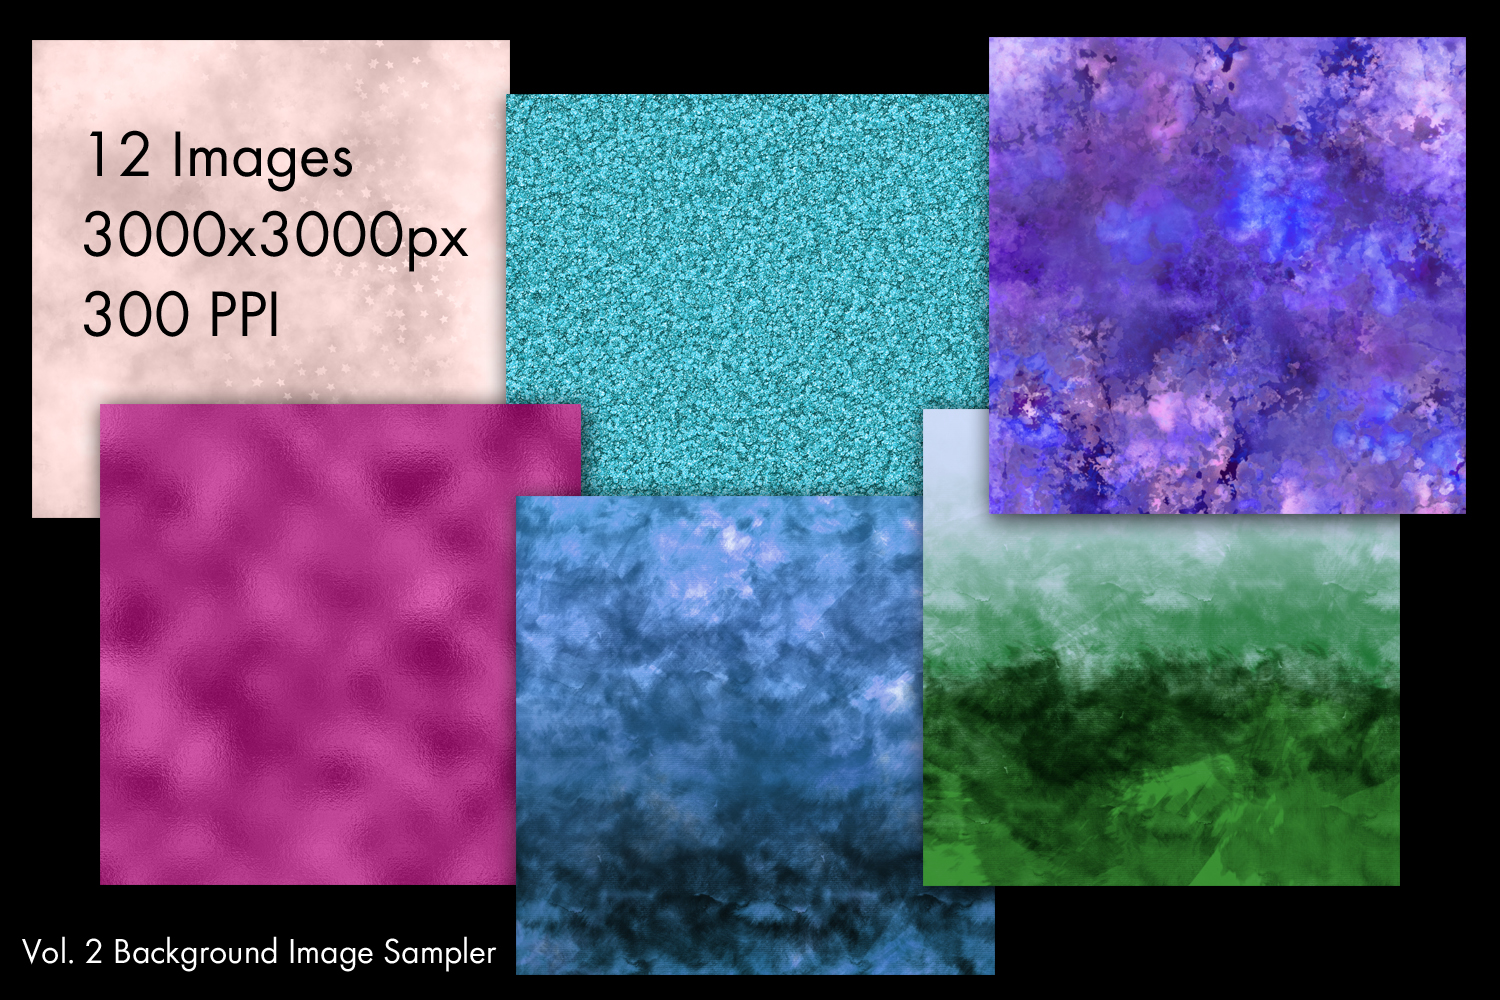 Background Image Sampler Vol. 2 example image 2